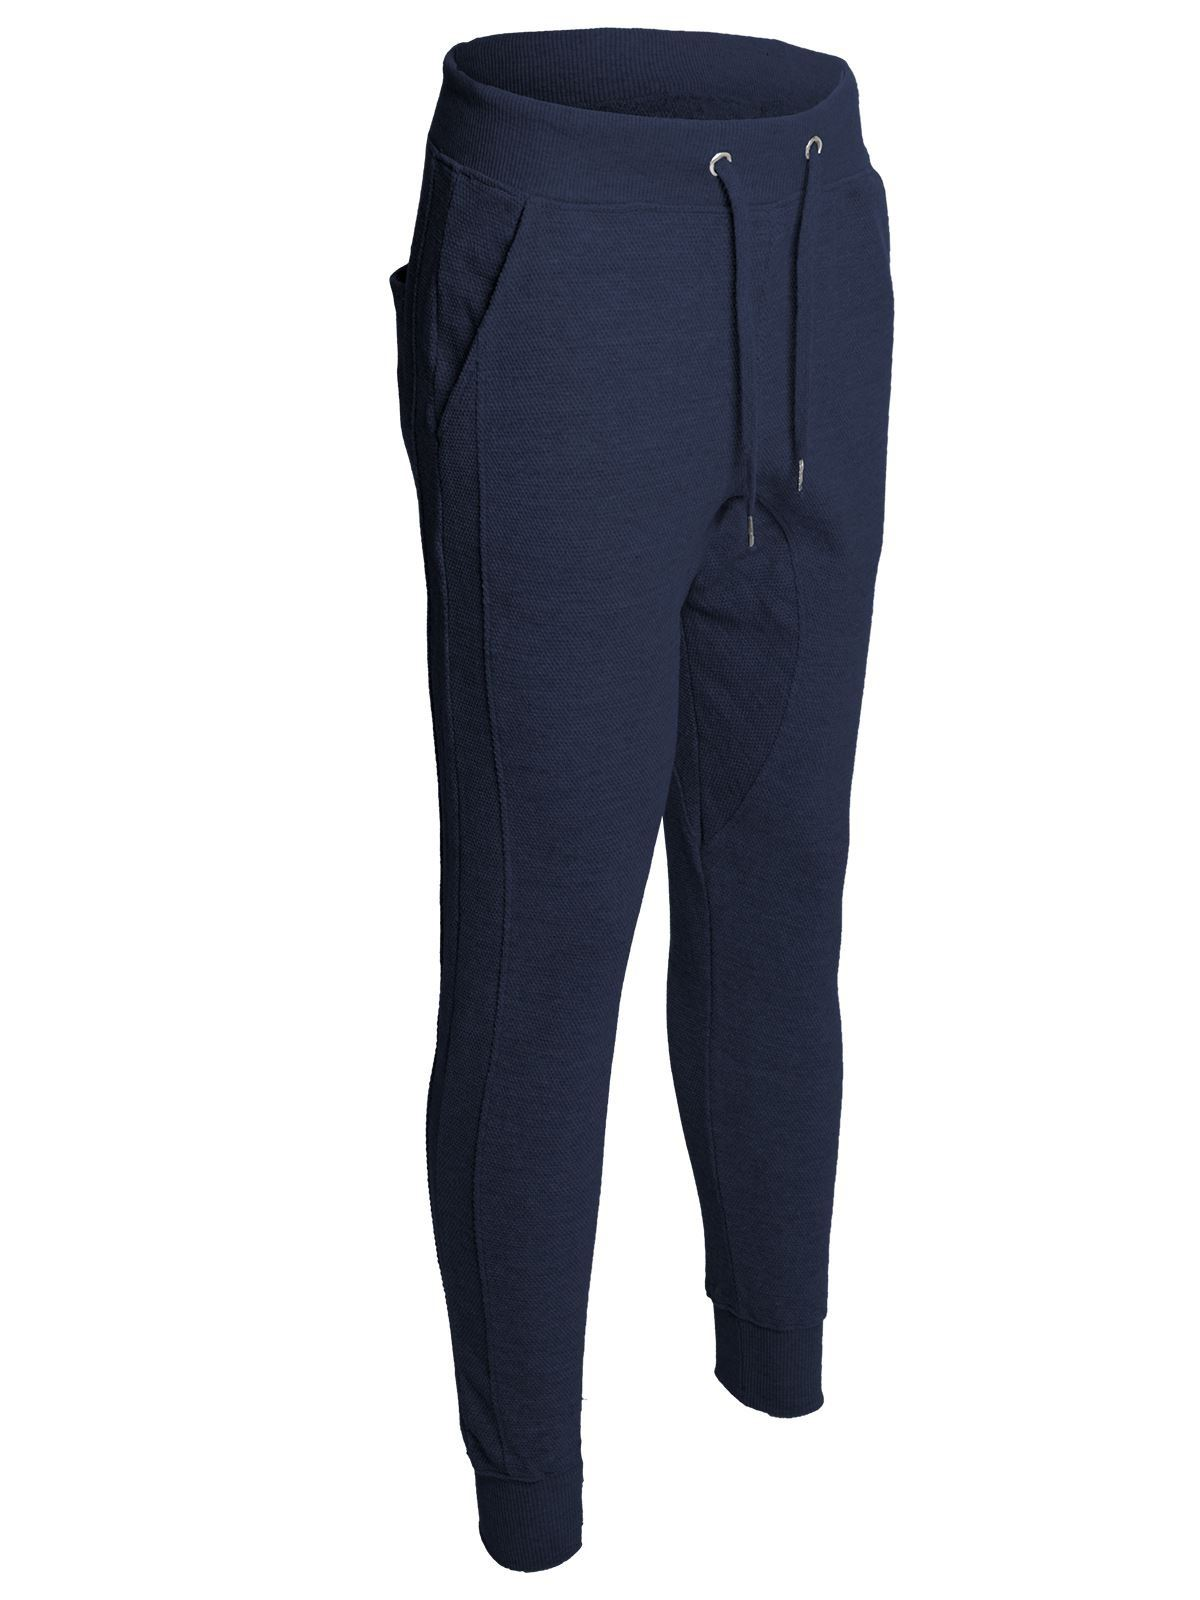 Find great deals on eBay for Boys slim jogger pants. Shop with confidence.